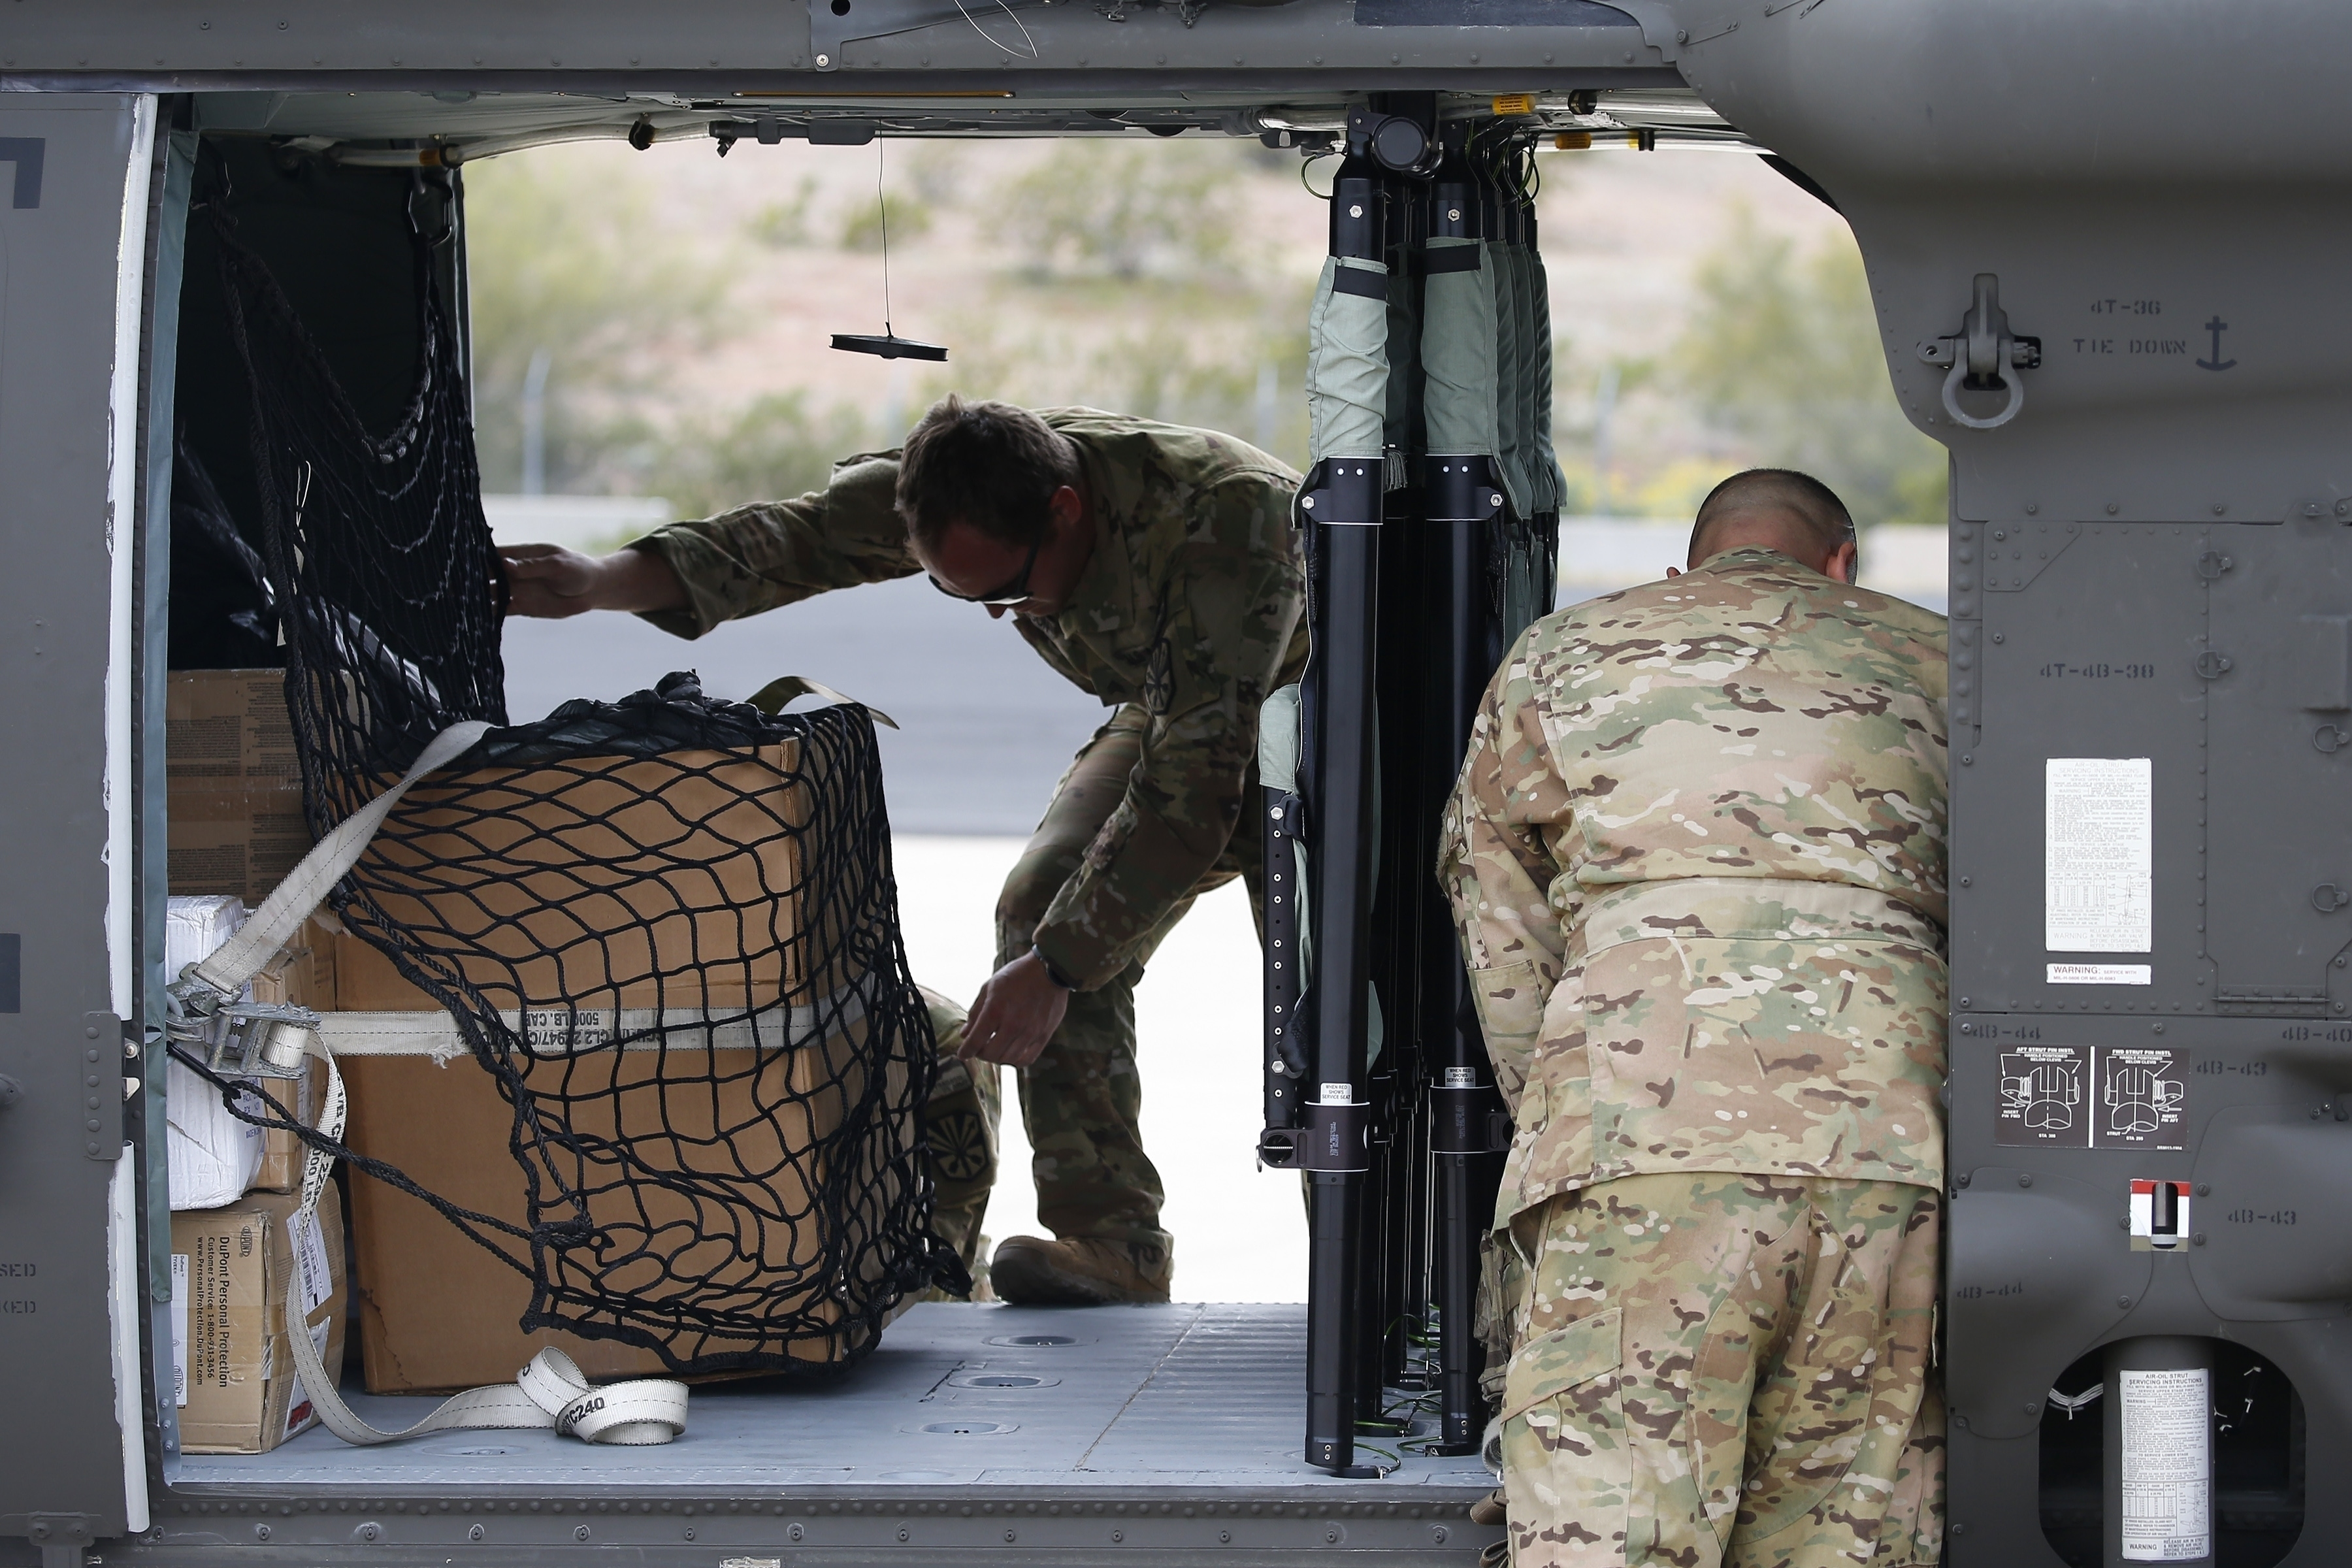 FILE - This March 31, 2020, file photo shows members of an Arizona National Guard unit loading up a Black Hawk helicopter to deliver medical supplies to the remote Navajo Nation town of Kayenta due to the coronavirus in Phoenix. The Navajo Nation has extended its weekend lockdowns preventing people from leaving their homes, except in emergencies, on the vast expanse of land that has been harder hit by the coronavirus than any other Native American reservation in the U.S. (AP Photo/Ross D. Franklin, File)